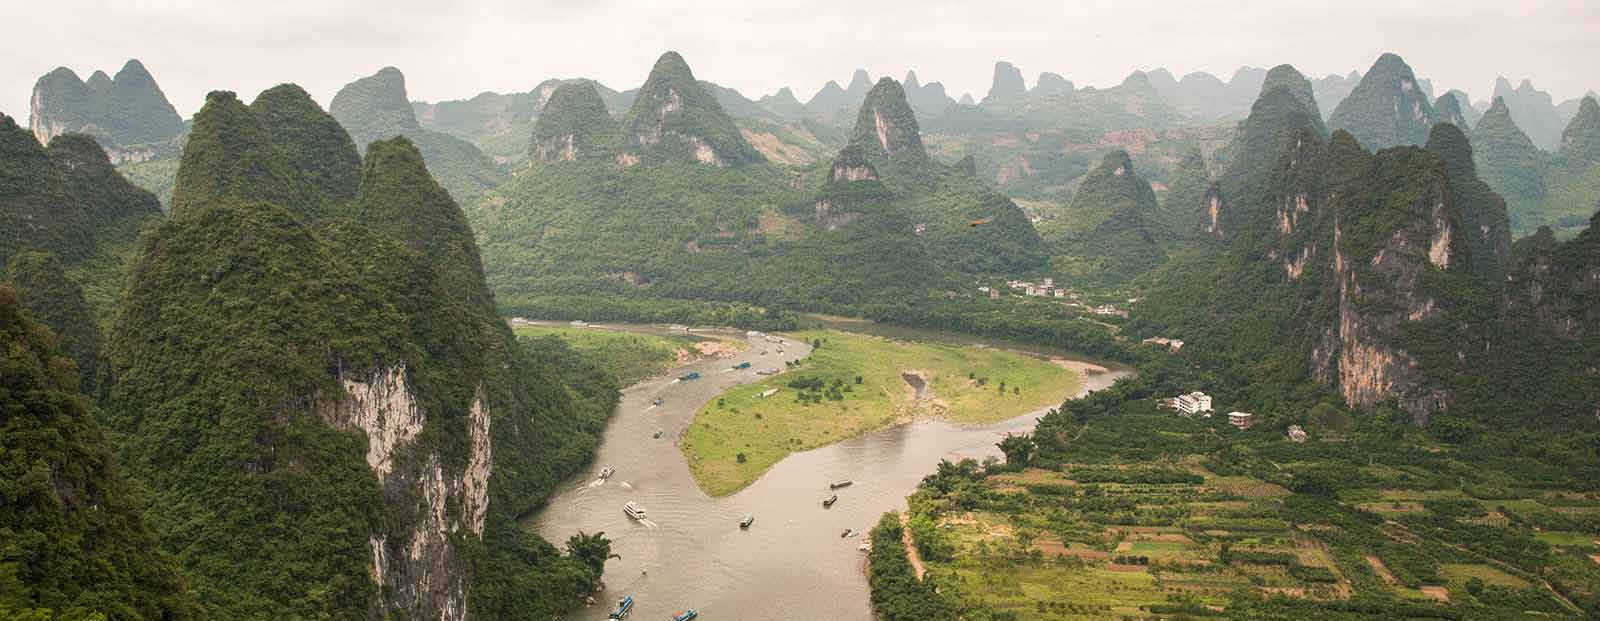 Yin and Yang in Guangxi